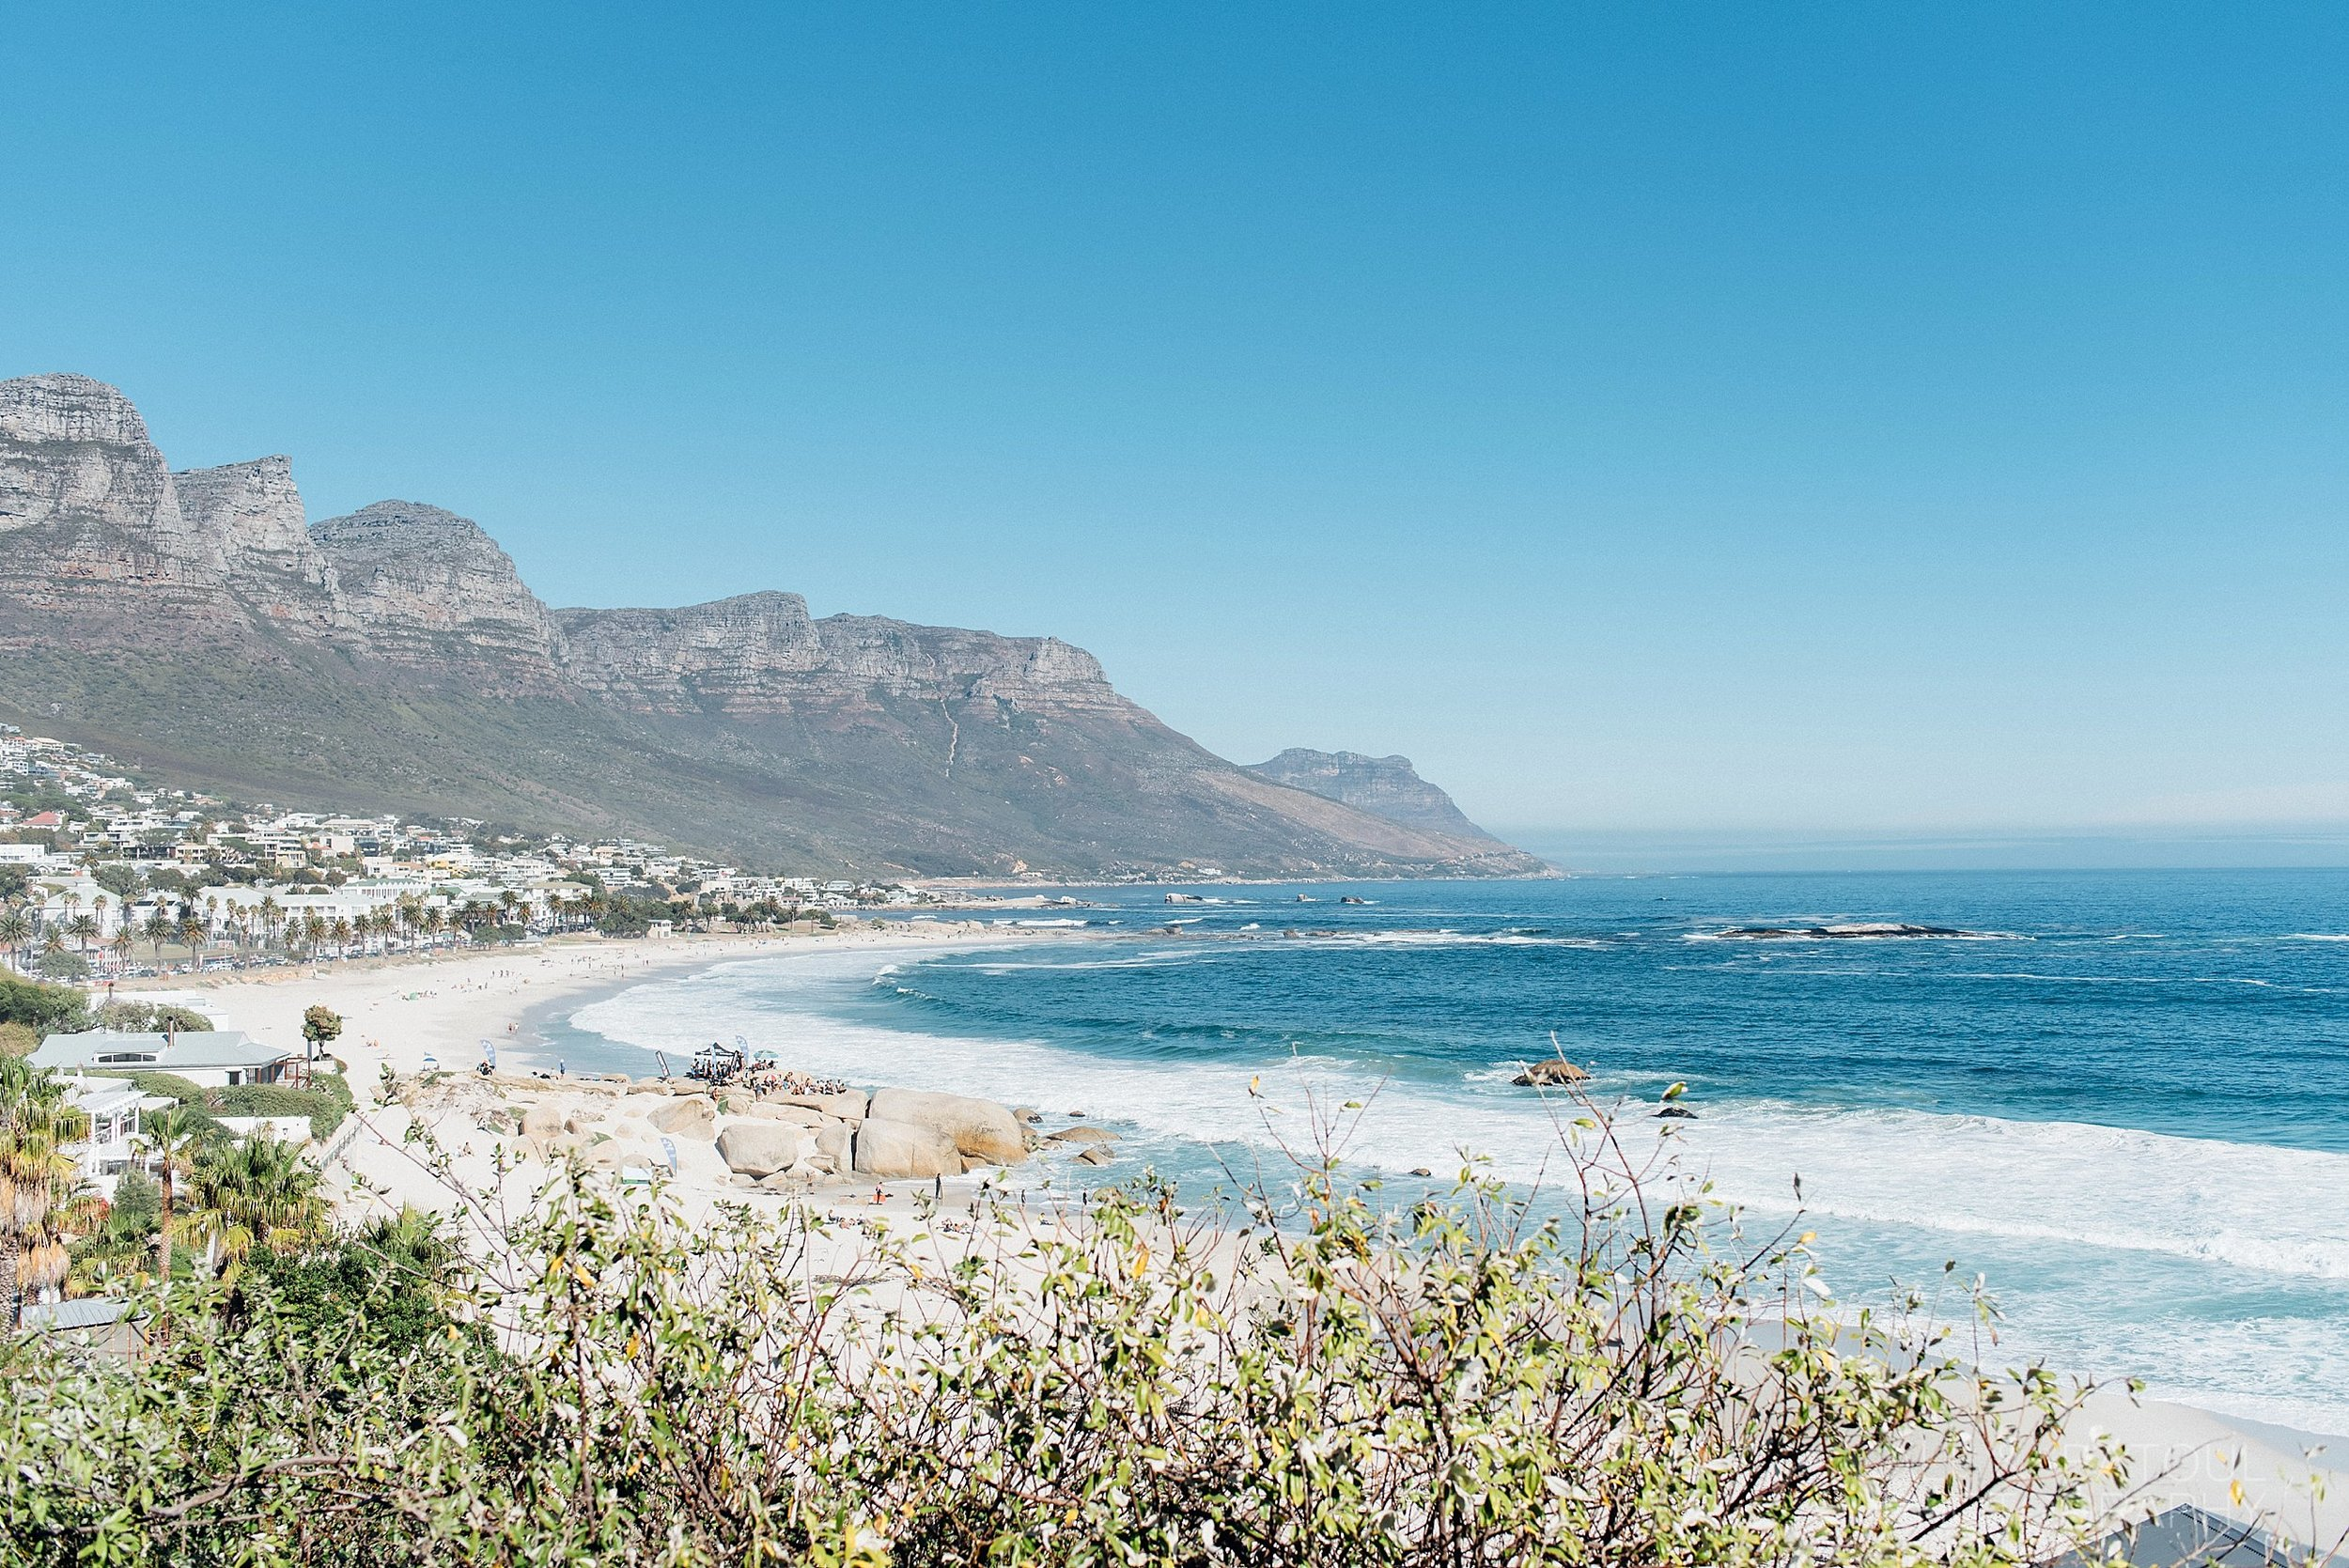 One of the 4 Clifton Beaches! Each one is more beautiful than the next.